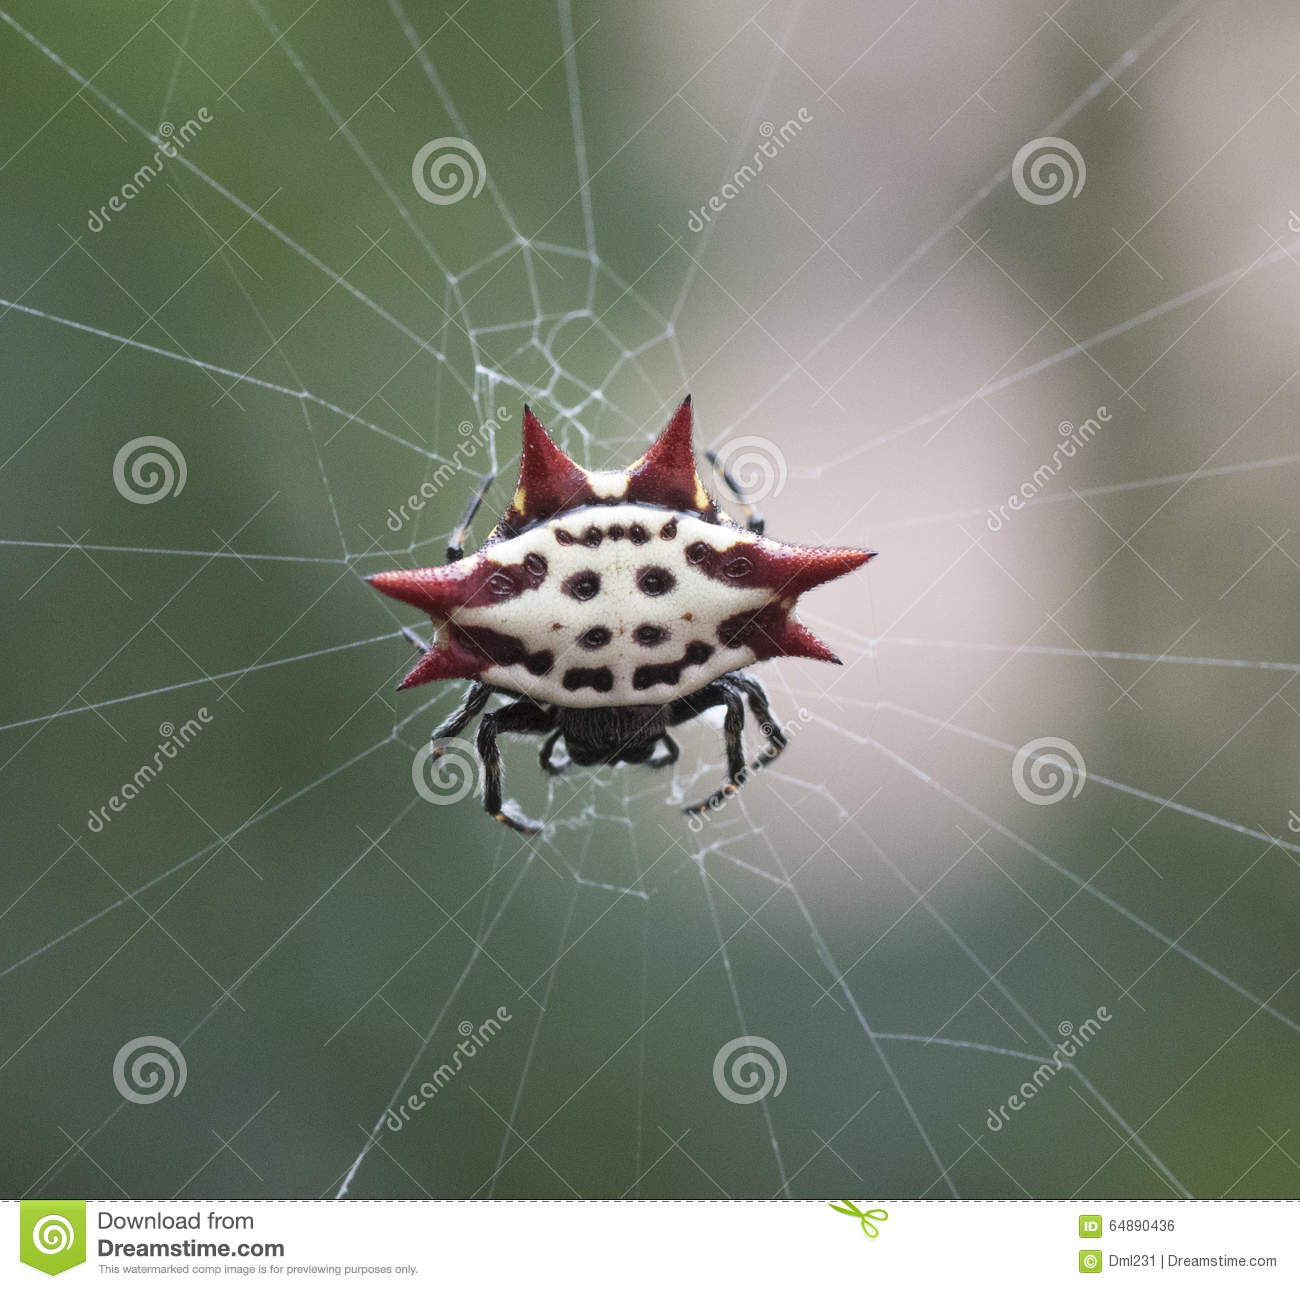 Spiny Orb Weaver clipart #17, Download drawings